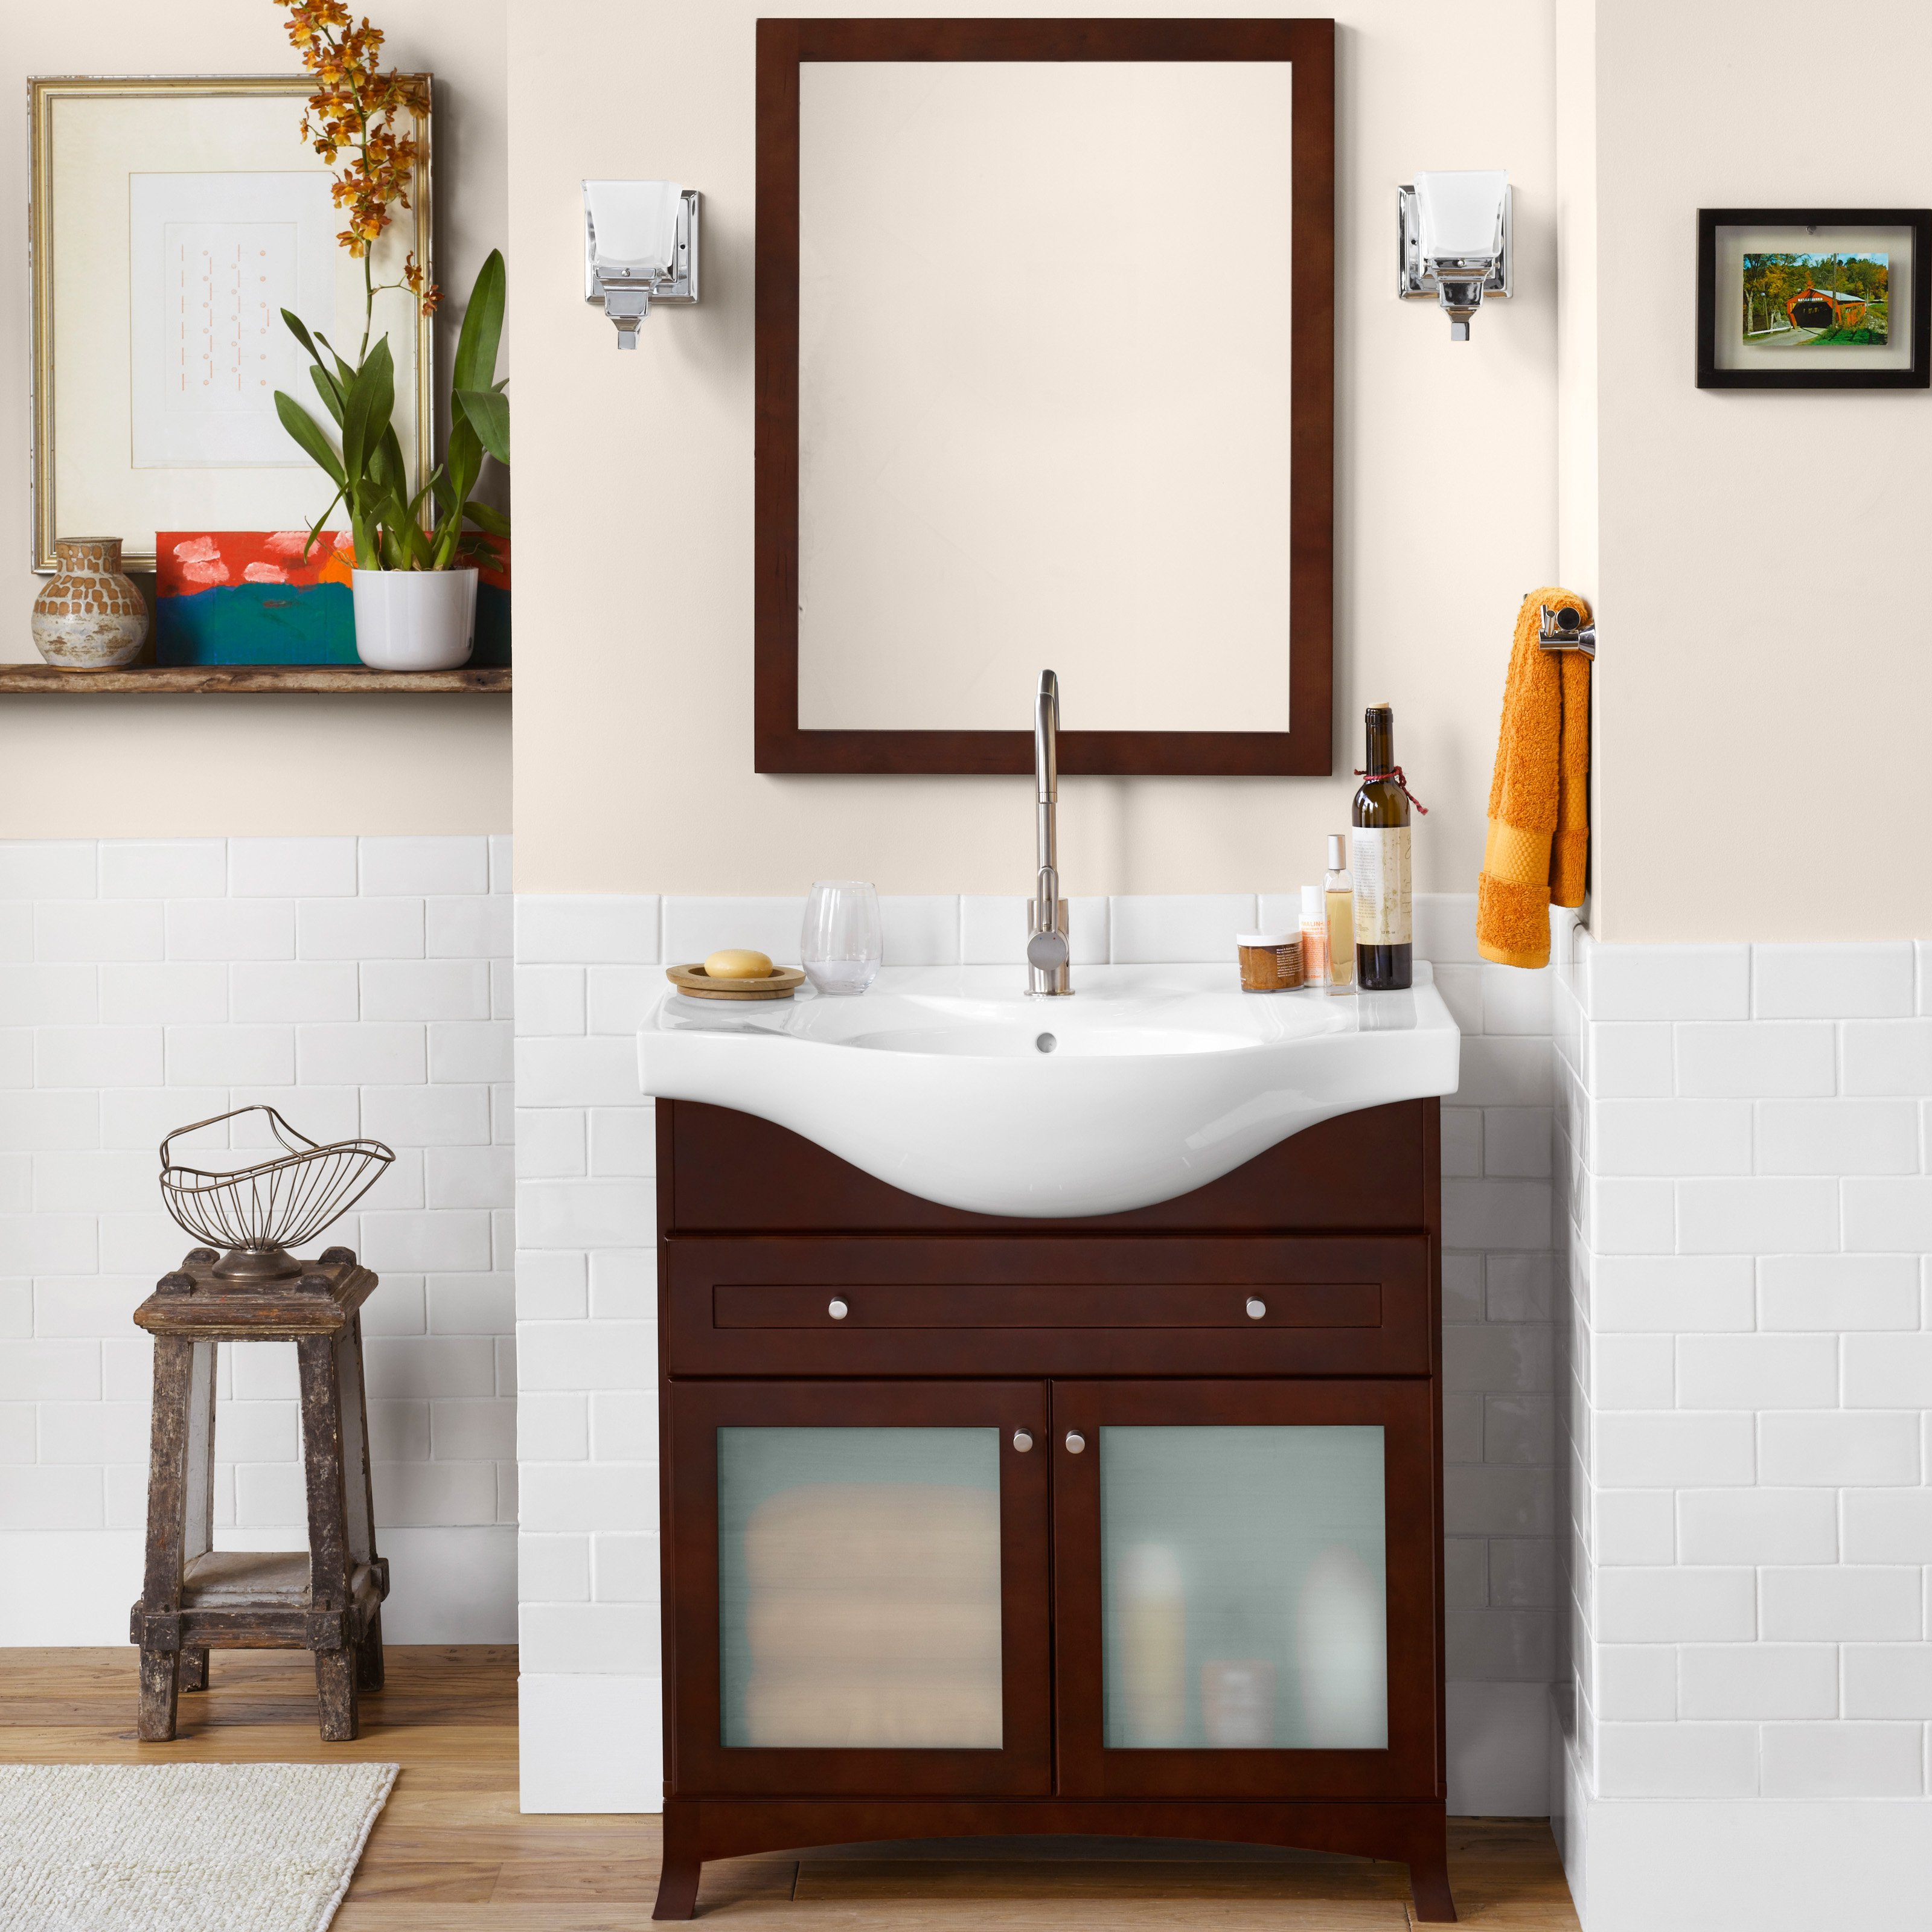 Ronbow Vanity Prices | Ronbow Vanity Tops | Ronbow Medicine Cabinet